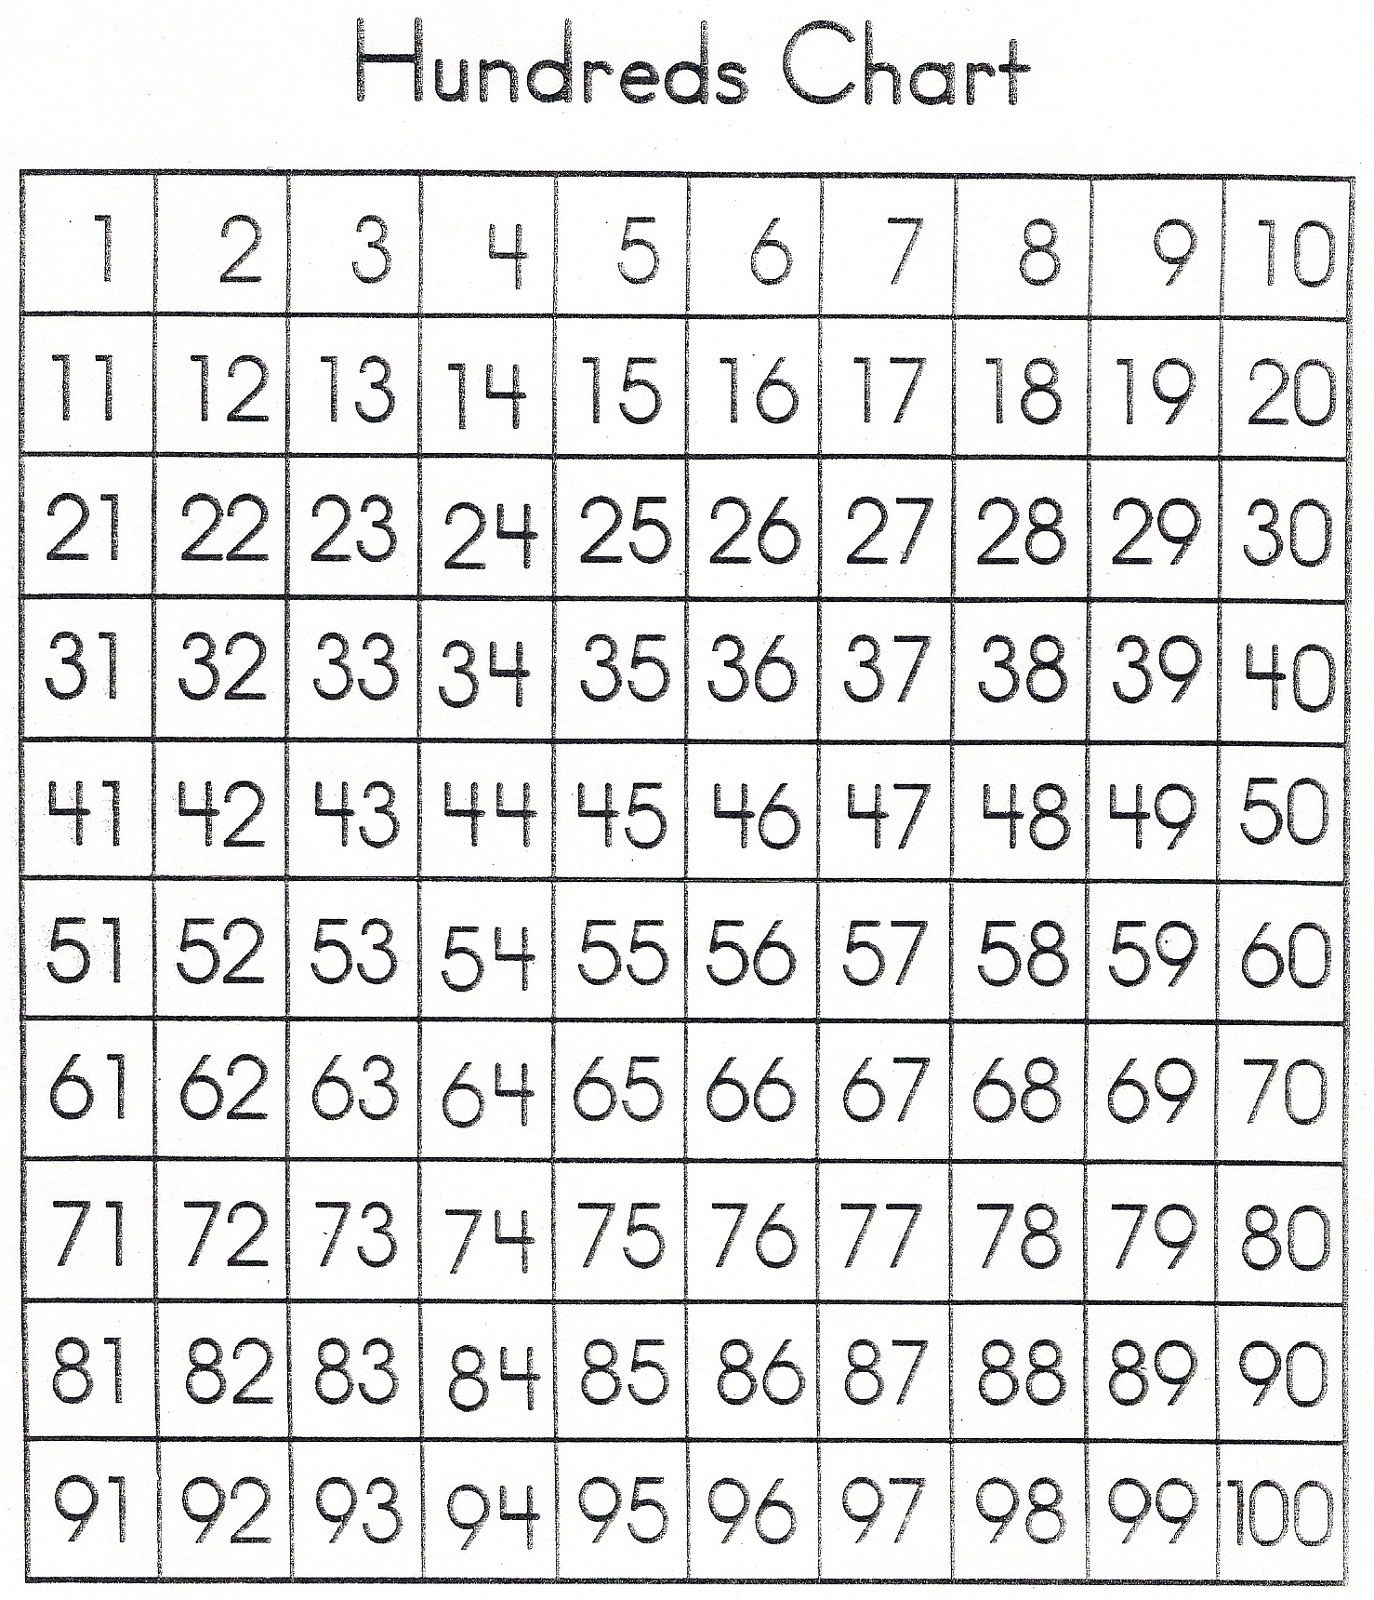 Number Sheet 1-100 To Print | Math Worksheets For Kids | 100 Number - Free Printable 100 Chart